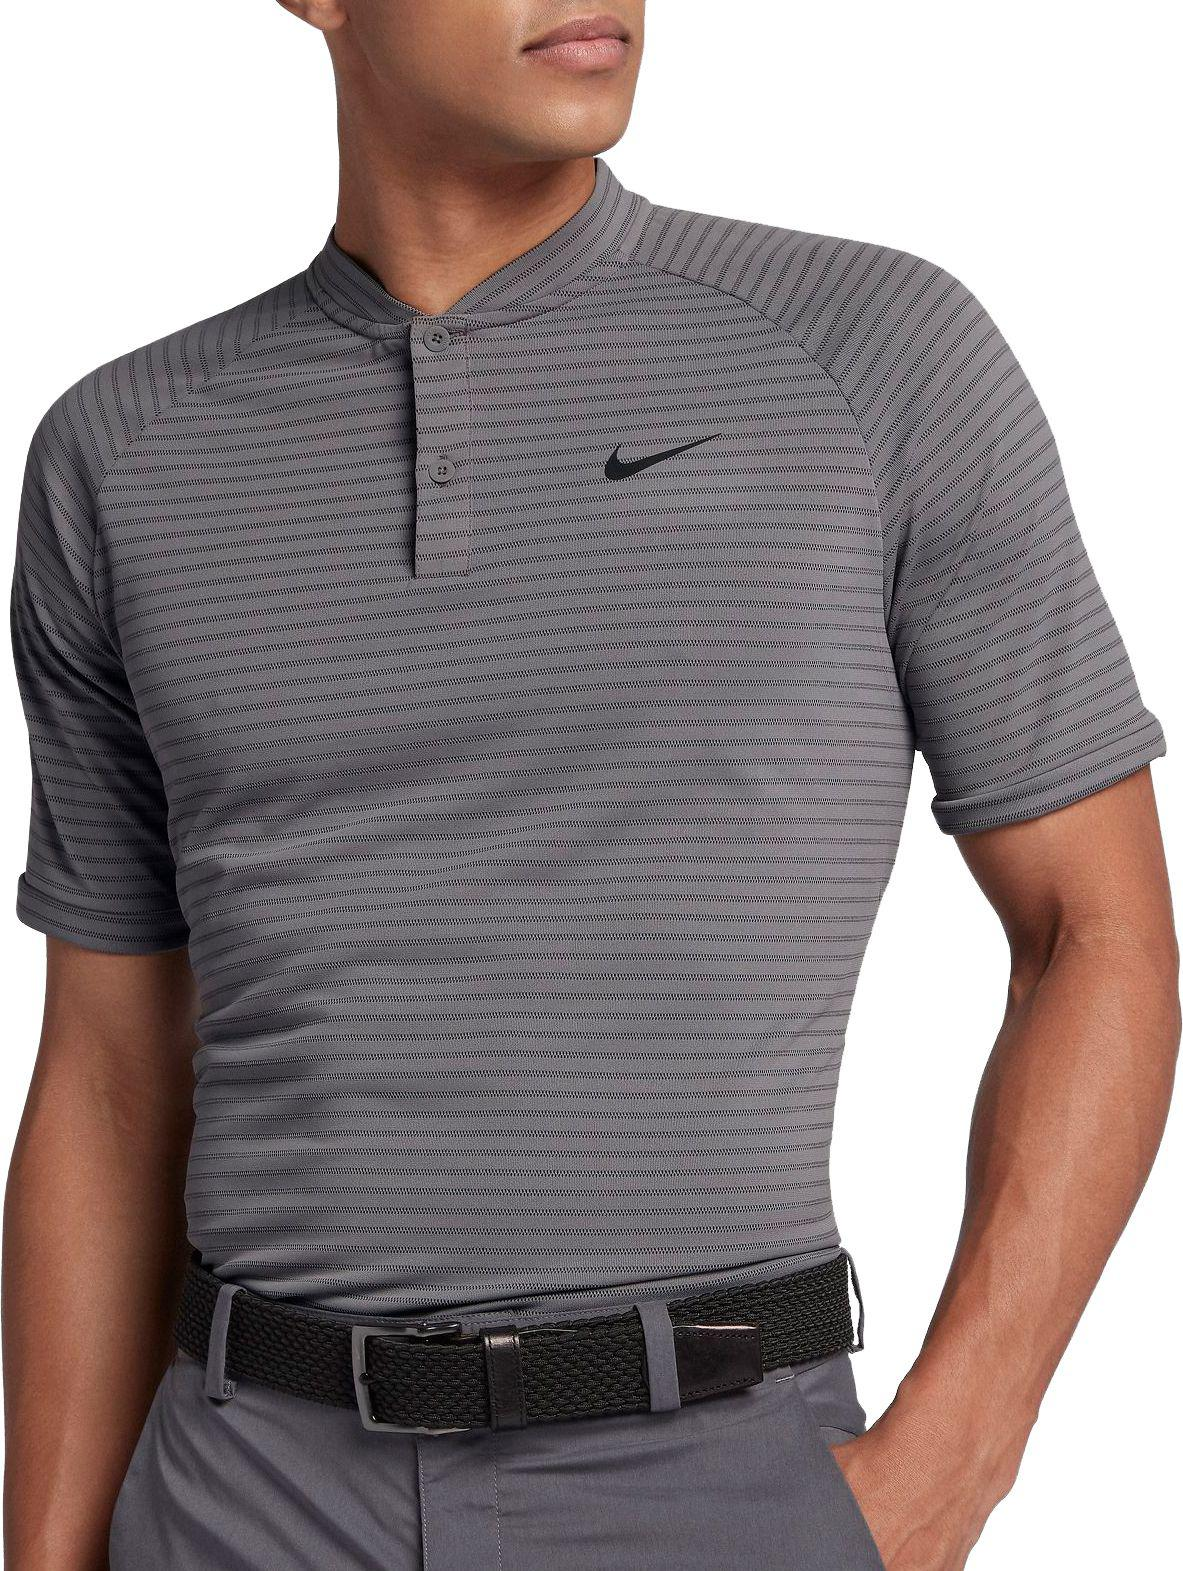 0a3d0728 Lyst - Nike Tiger Woods Thin Stripe Zonal Cooling Golf Polo in Gray ...